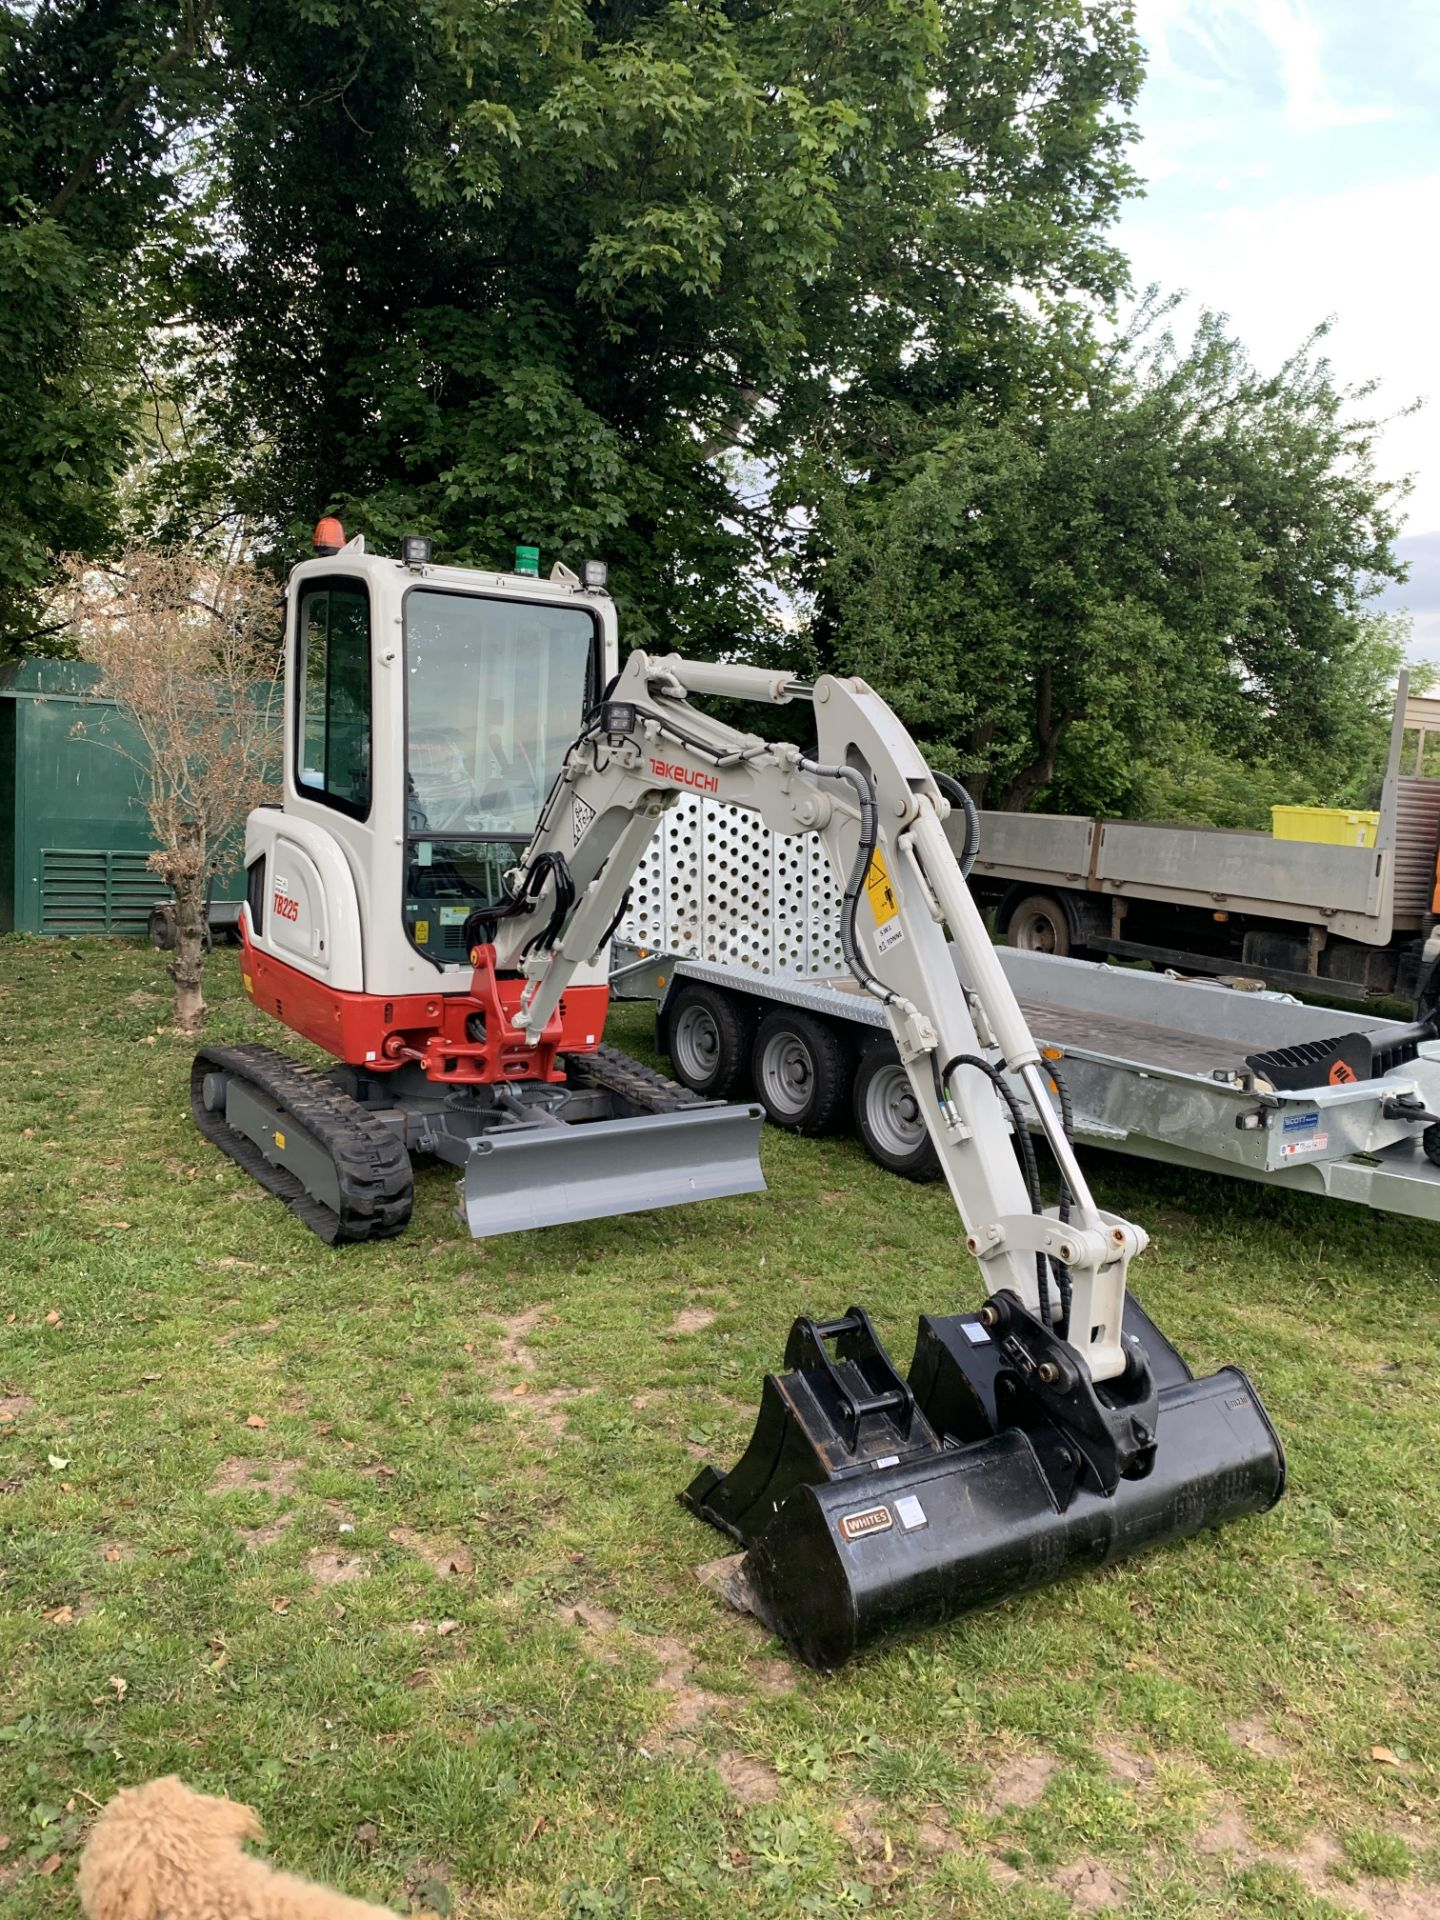 Lot 5 - TAKEUCHI TB 225 LATEST MODEL 17 HRS ON SHOW DEMO ONLY HYD QUICK HITCH